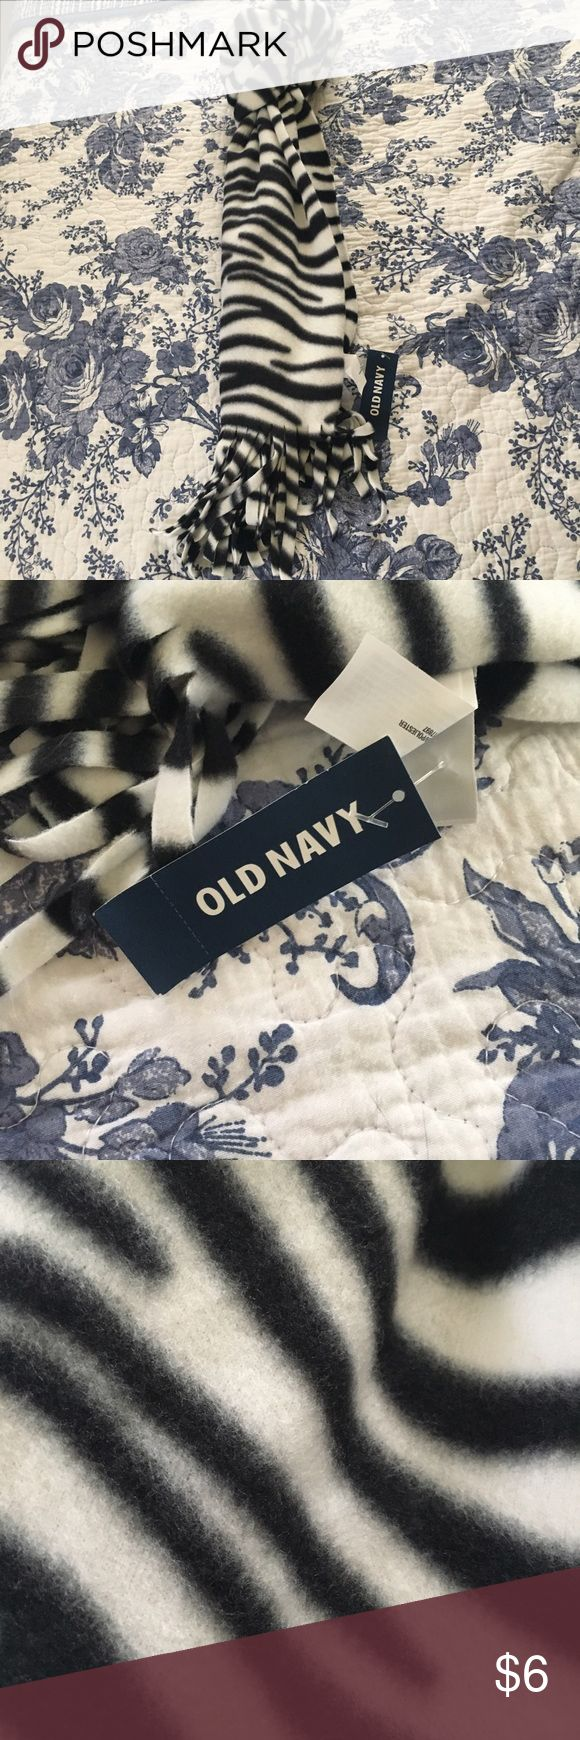 NWT Old Navy Zebra Print Scarf super soft winter scarf from Old Navy that features a zebra print design. never wore, still has tags! price is firm unless bundled. bundle and save! Old Navy Accessories Scarves & Wraps